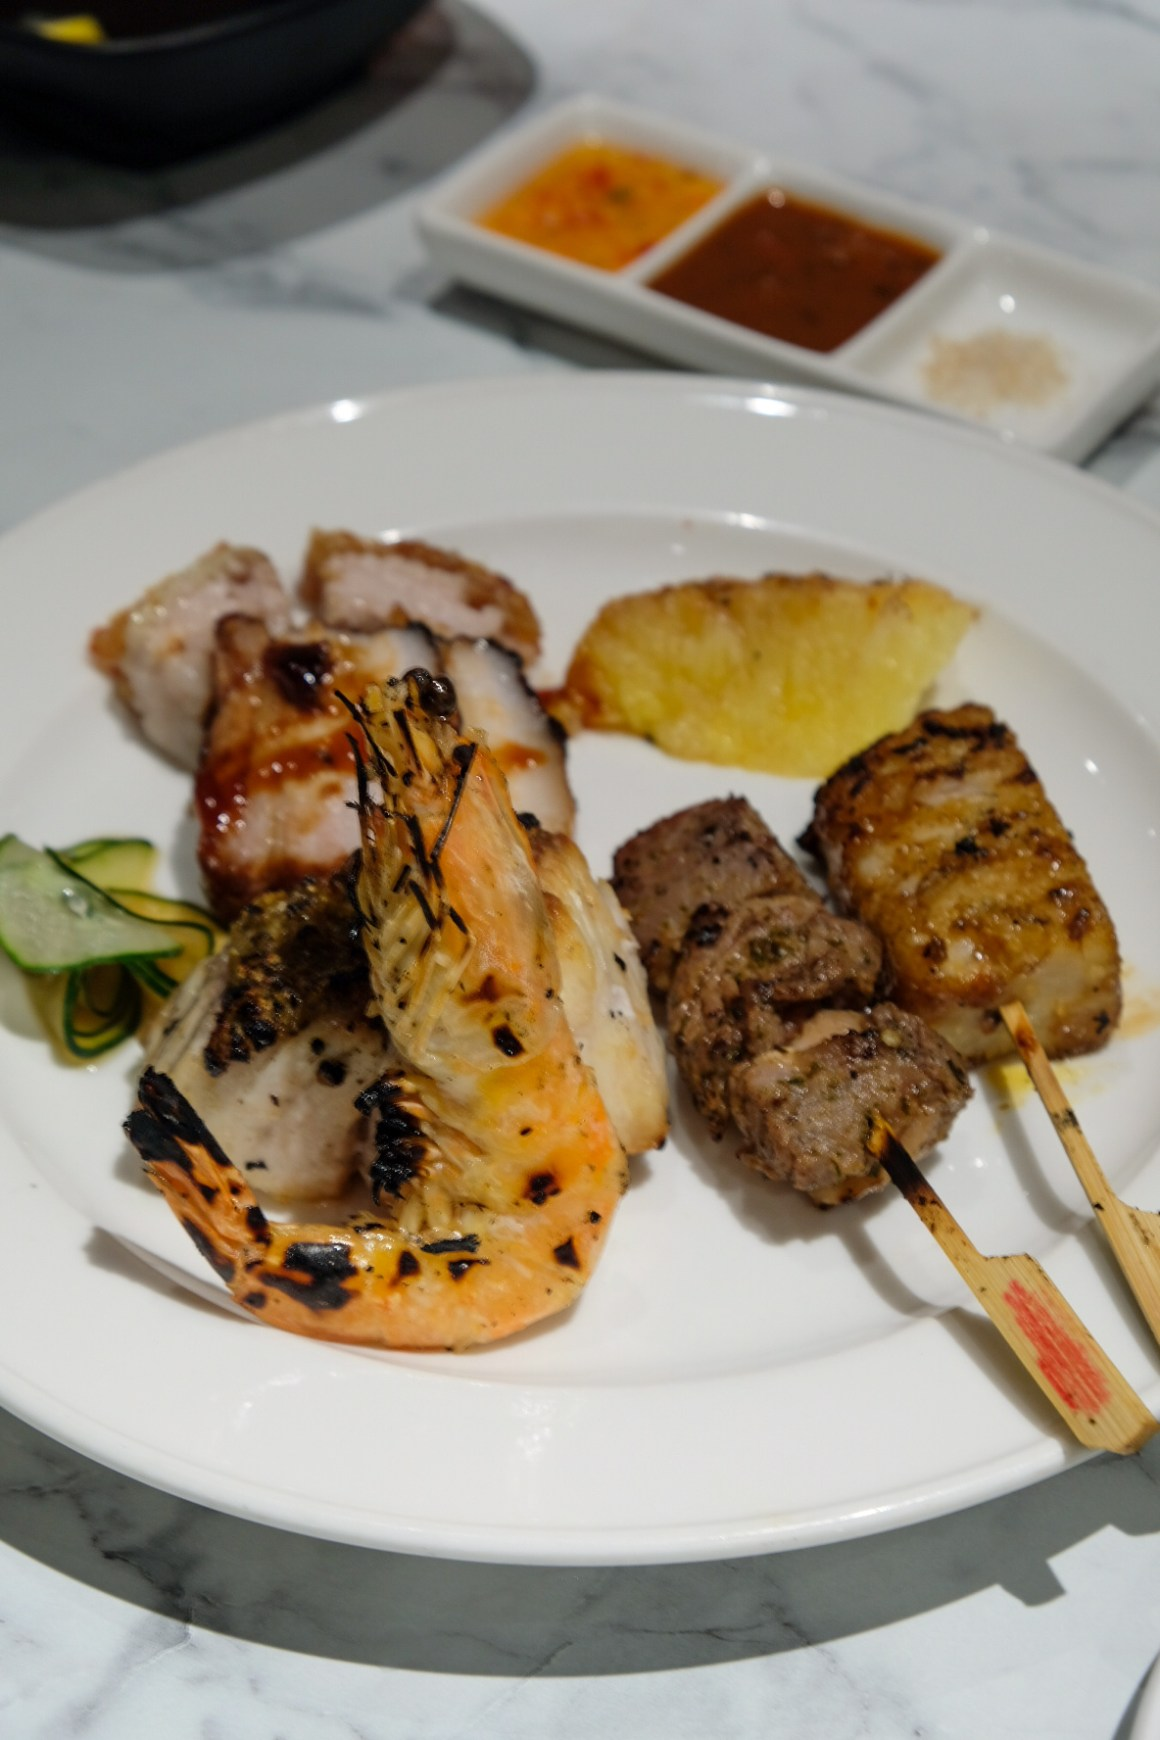 Asian Street Food Weekend A La Carte Buffet At Spice Brasserie - Charcoal Grill